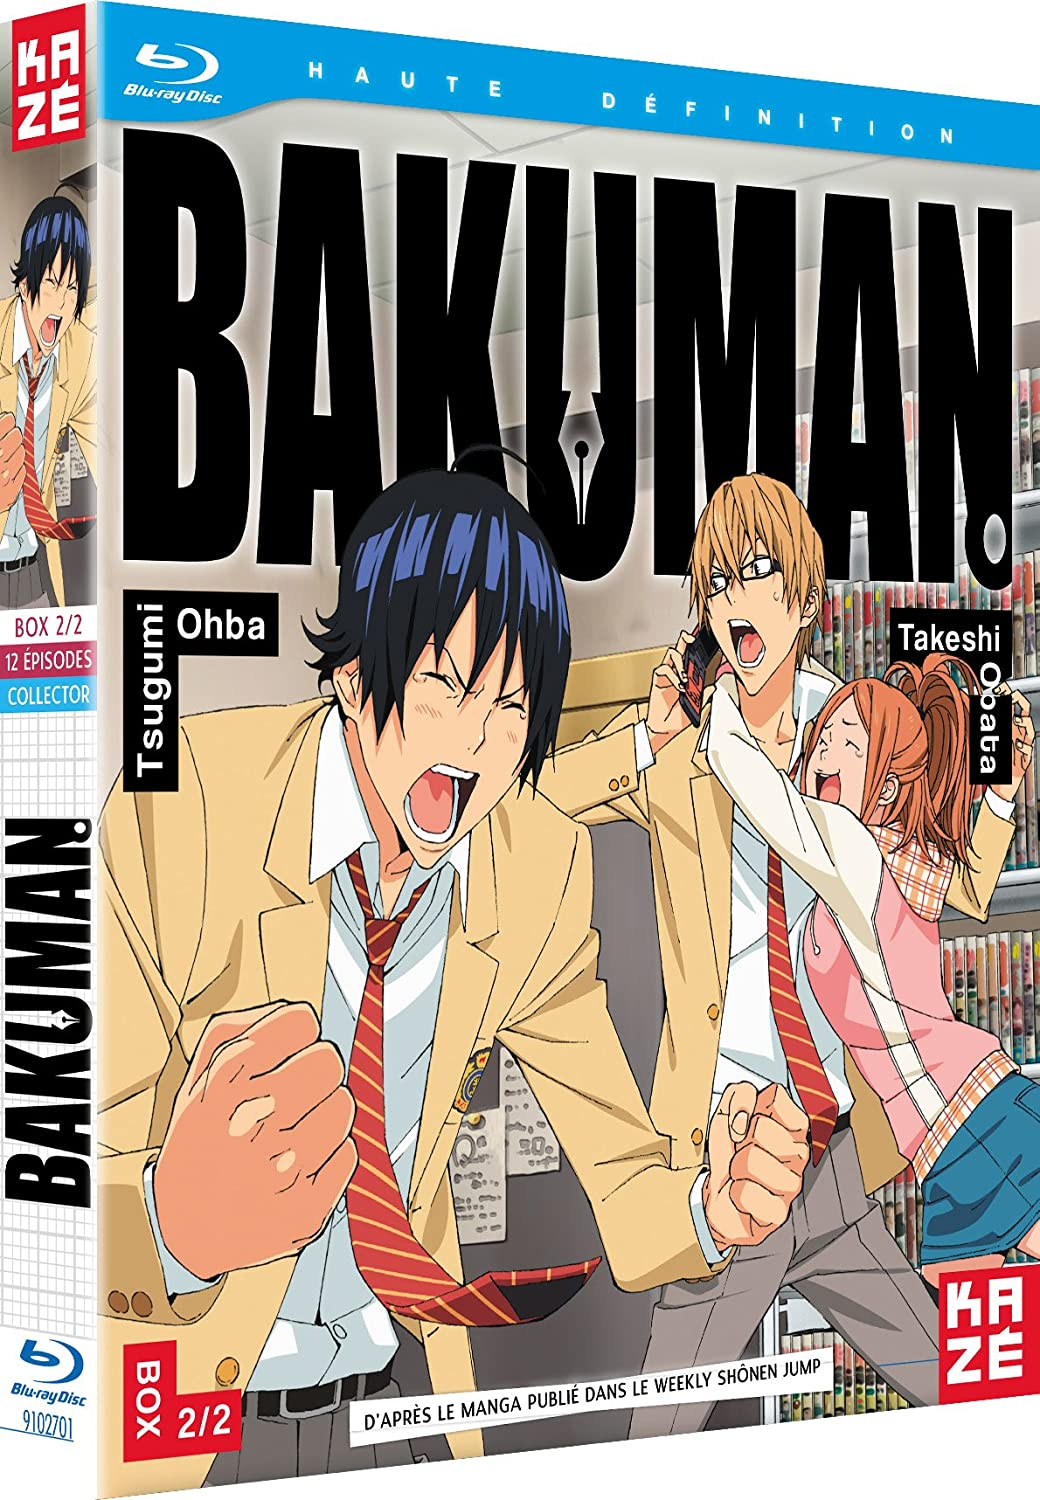 amazon com bakuman box 2 2 edition collector blu ray movies tv bakuman box 2 2 edition collector blu ray